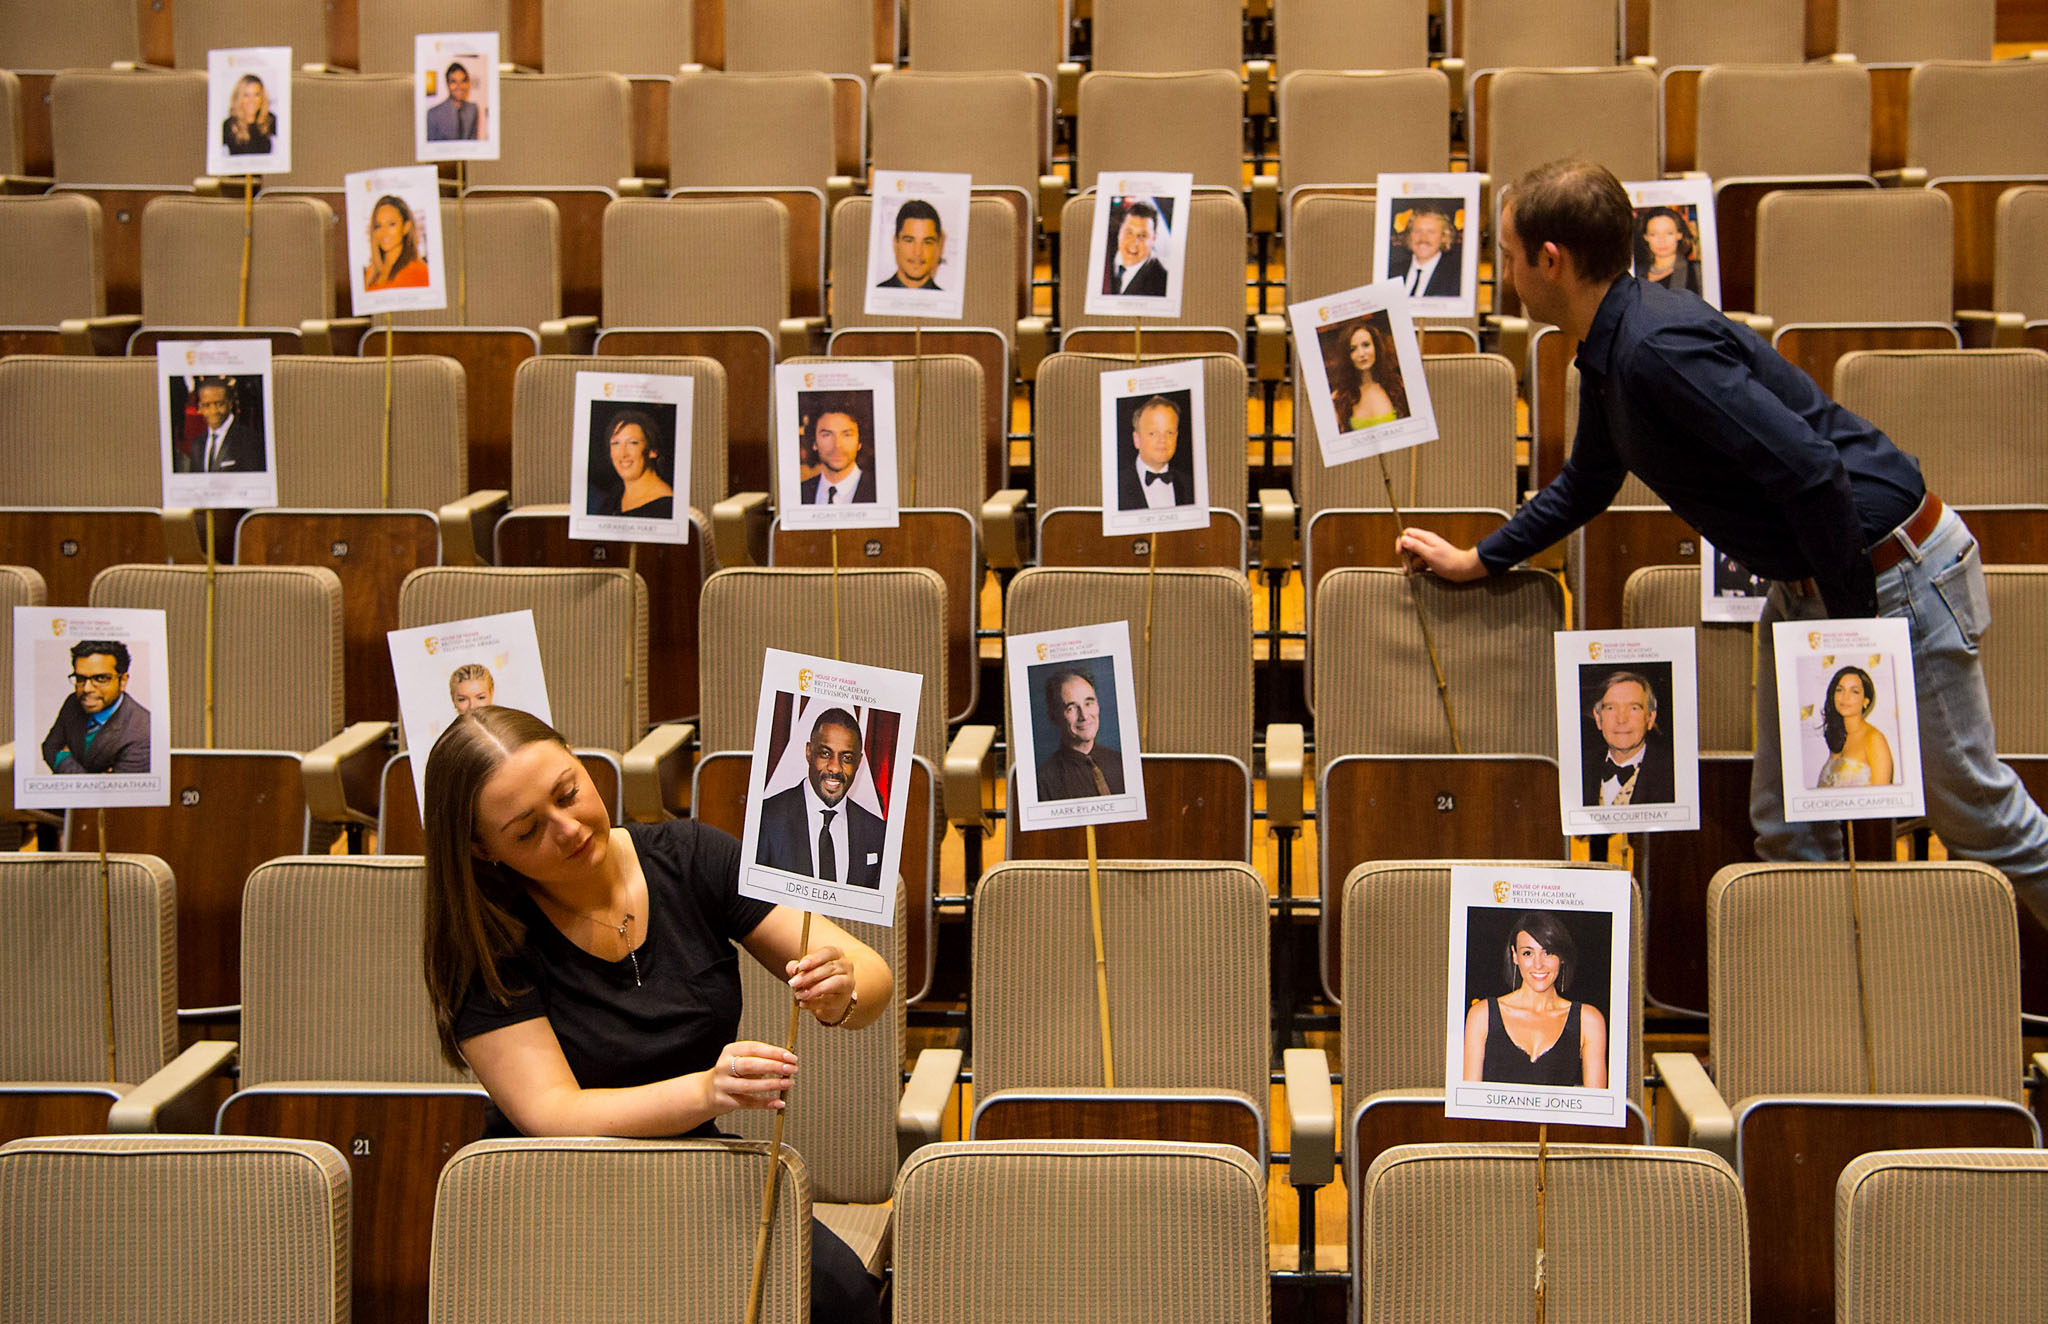 House of Fraser BAFTA TV Awards preparations - London...Members of BAFTA staff adjust heads on sticks showing the seating plan for nominees and guests at the House of Fraser BAFTA TV Awards, at the Royal Festival Hall, London. PRESS ASSOCIATION Photo. Picture date: Thursday May 5, 2016.